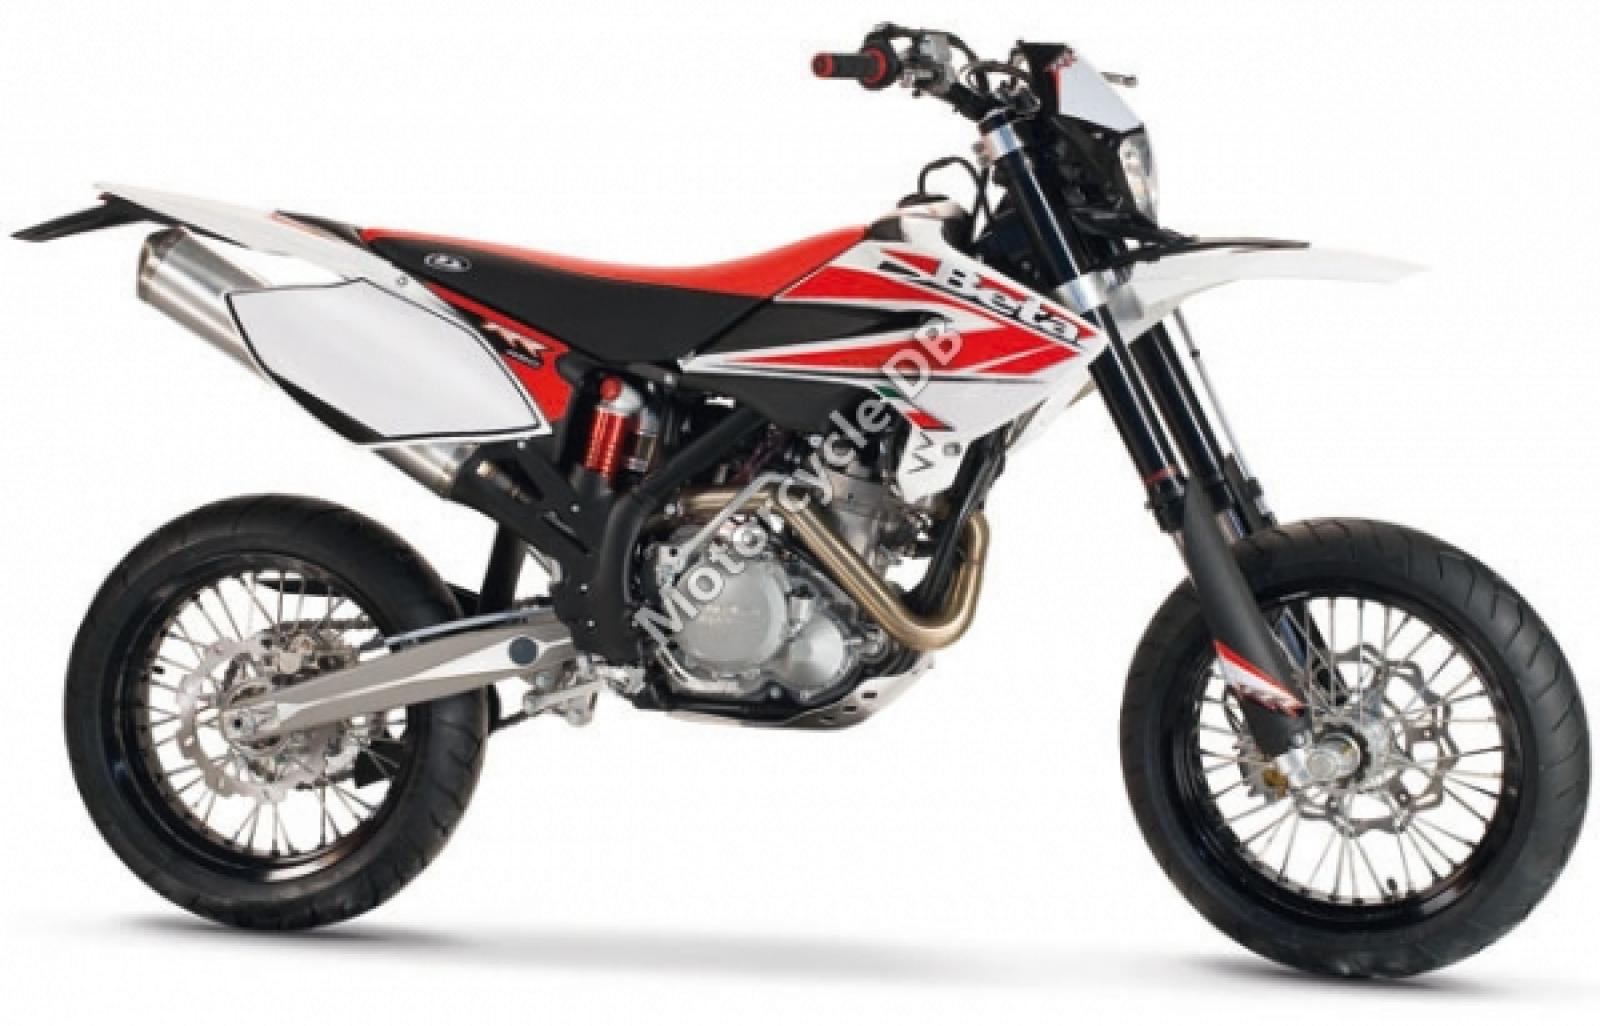 Highland 950 V2 Outback Supermoto 2005 images #97063